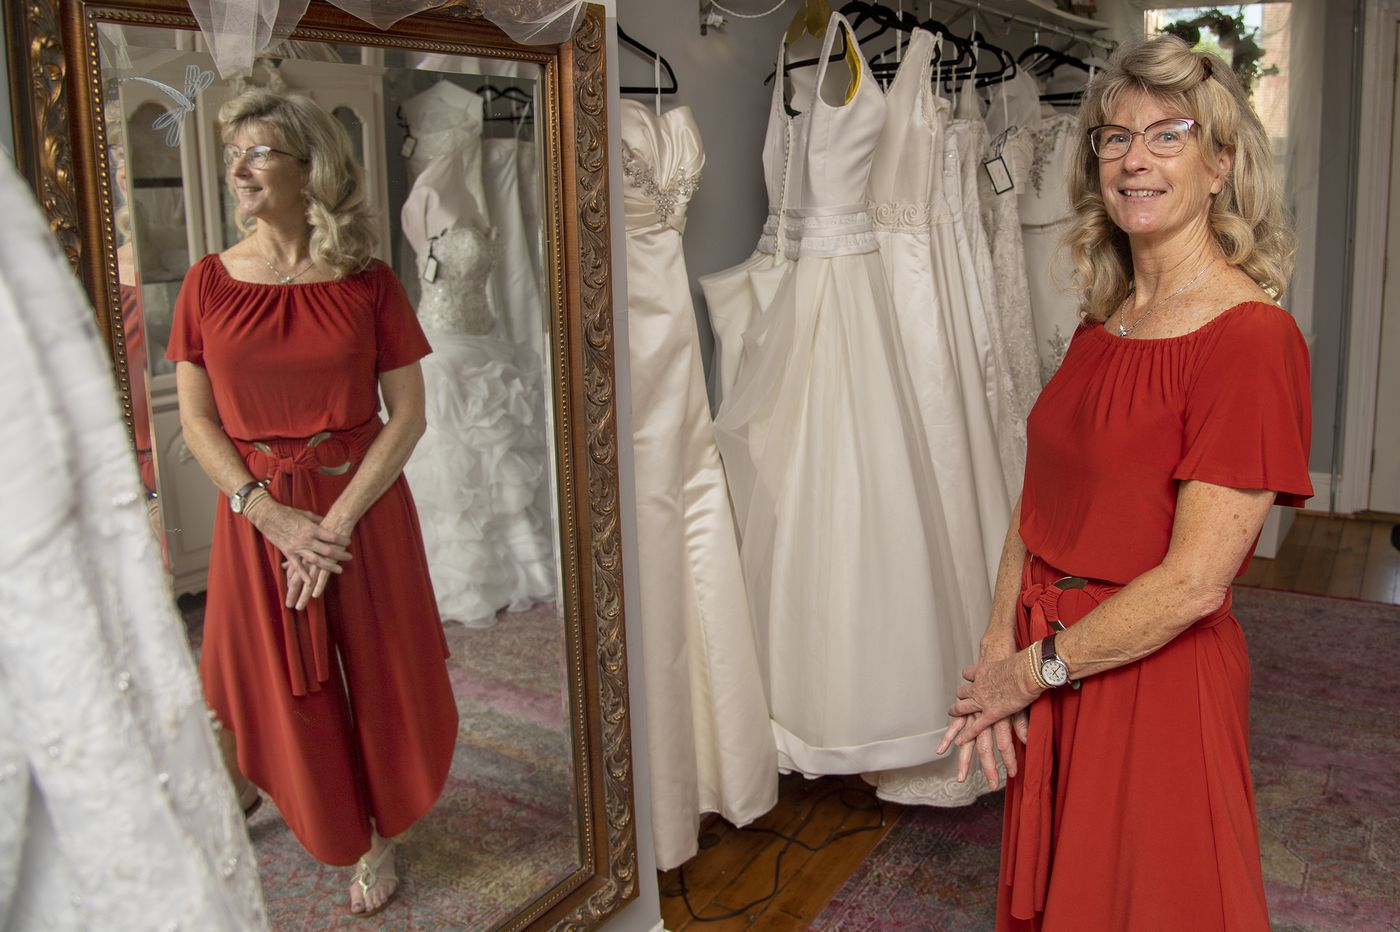 She's a hospice nurse. But her calling is Blessing Brides Ministry, where second-chance dresses make for the best love stories.